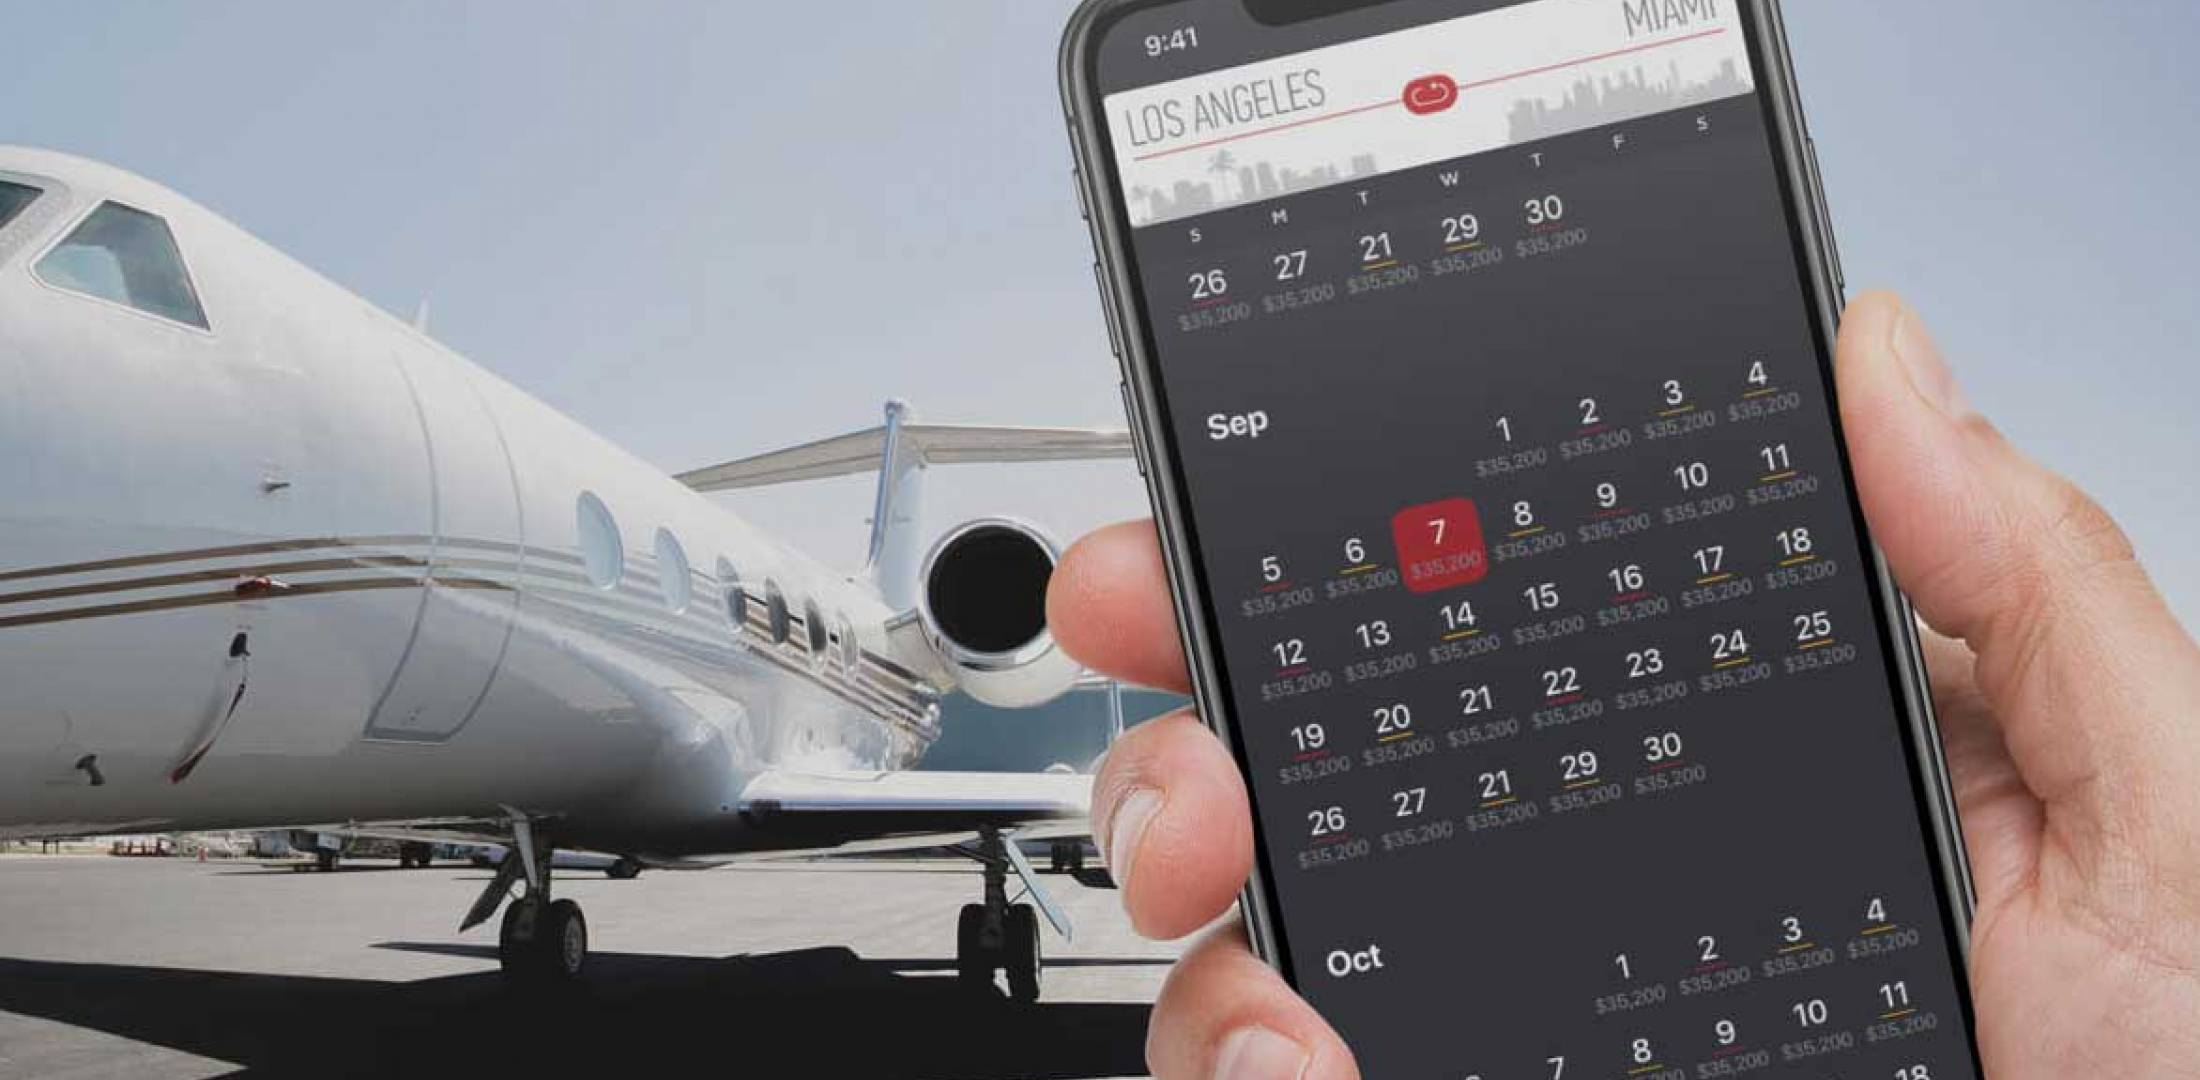 Xo aircraft with booking app